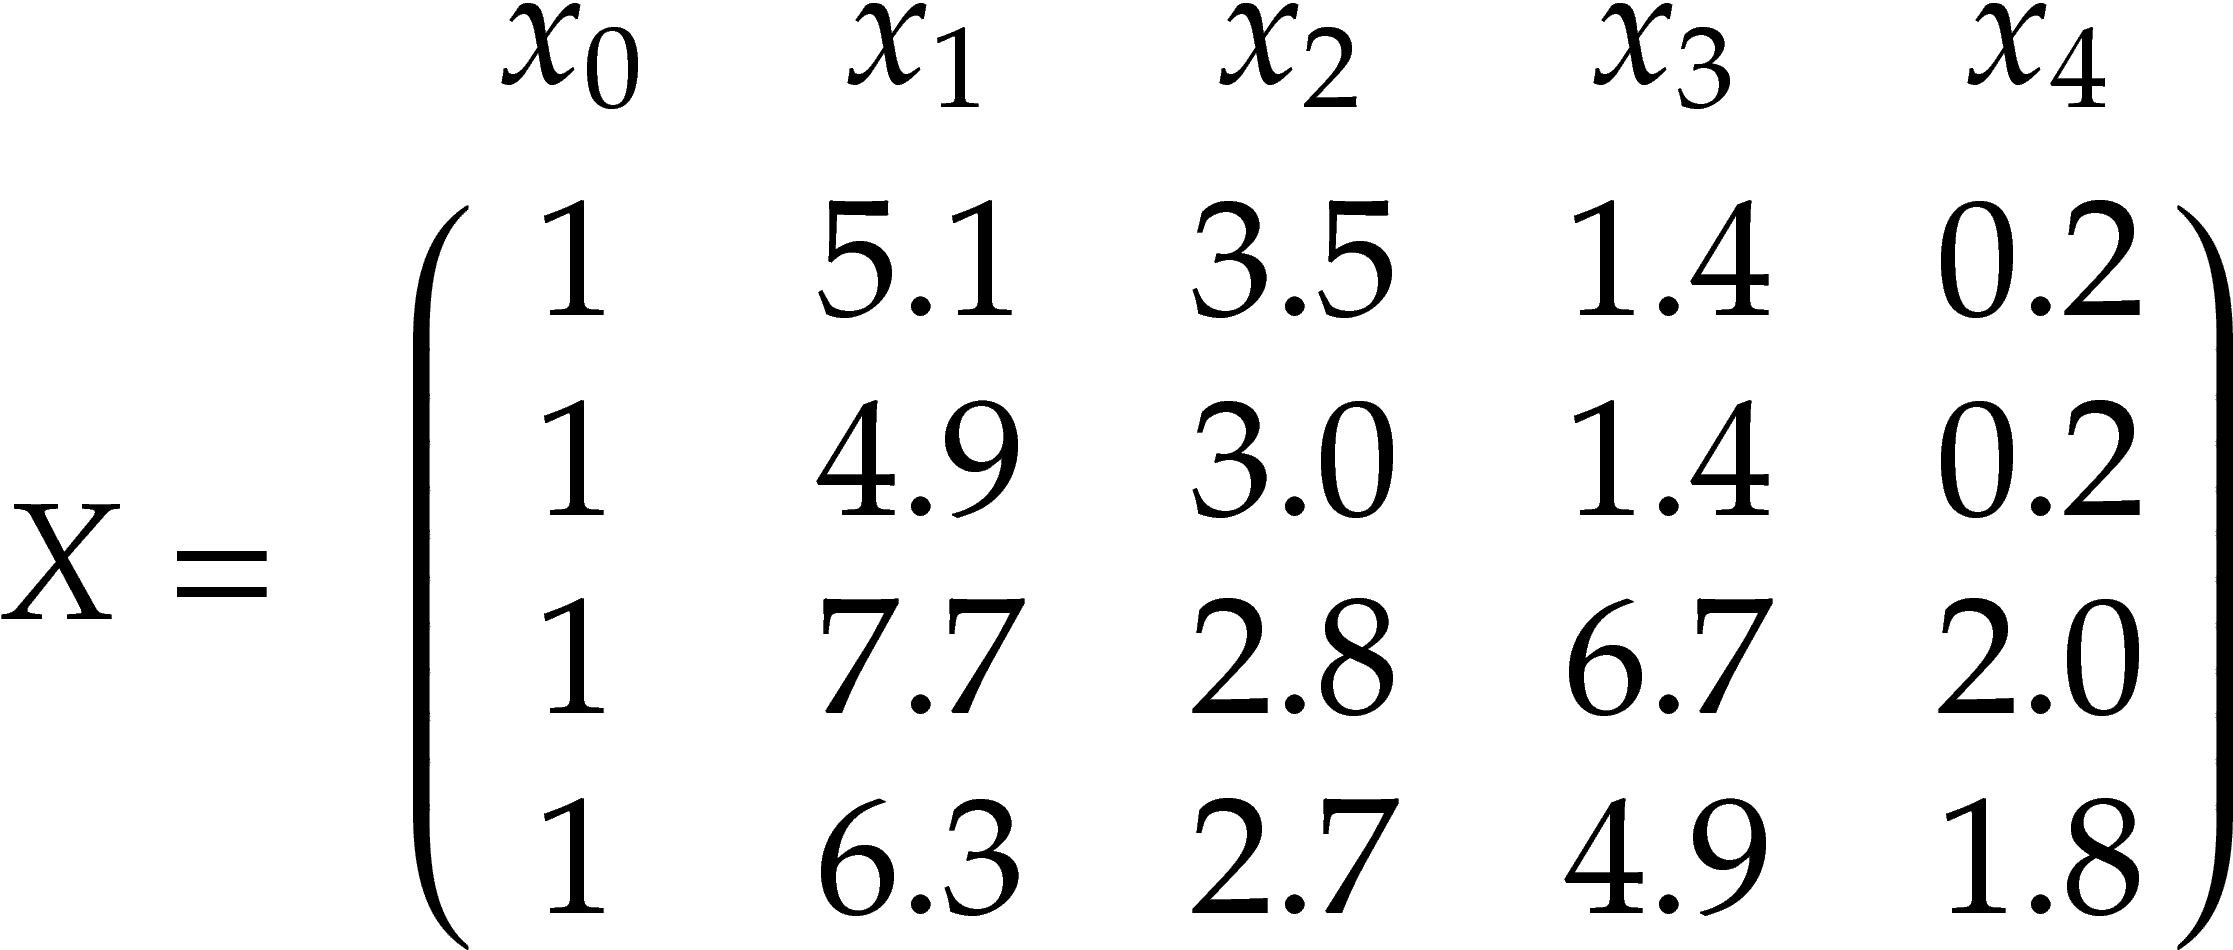 Machine Learning Basics - Logistic Regression from Scratch